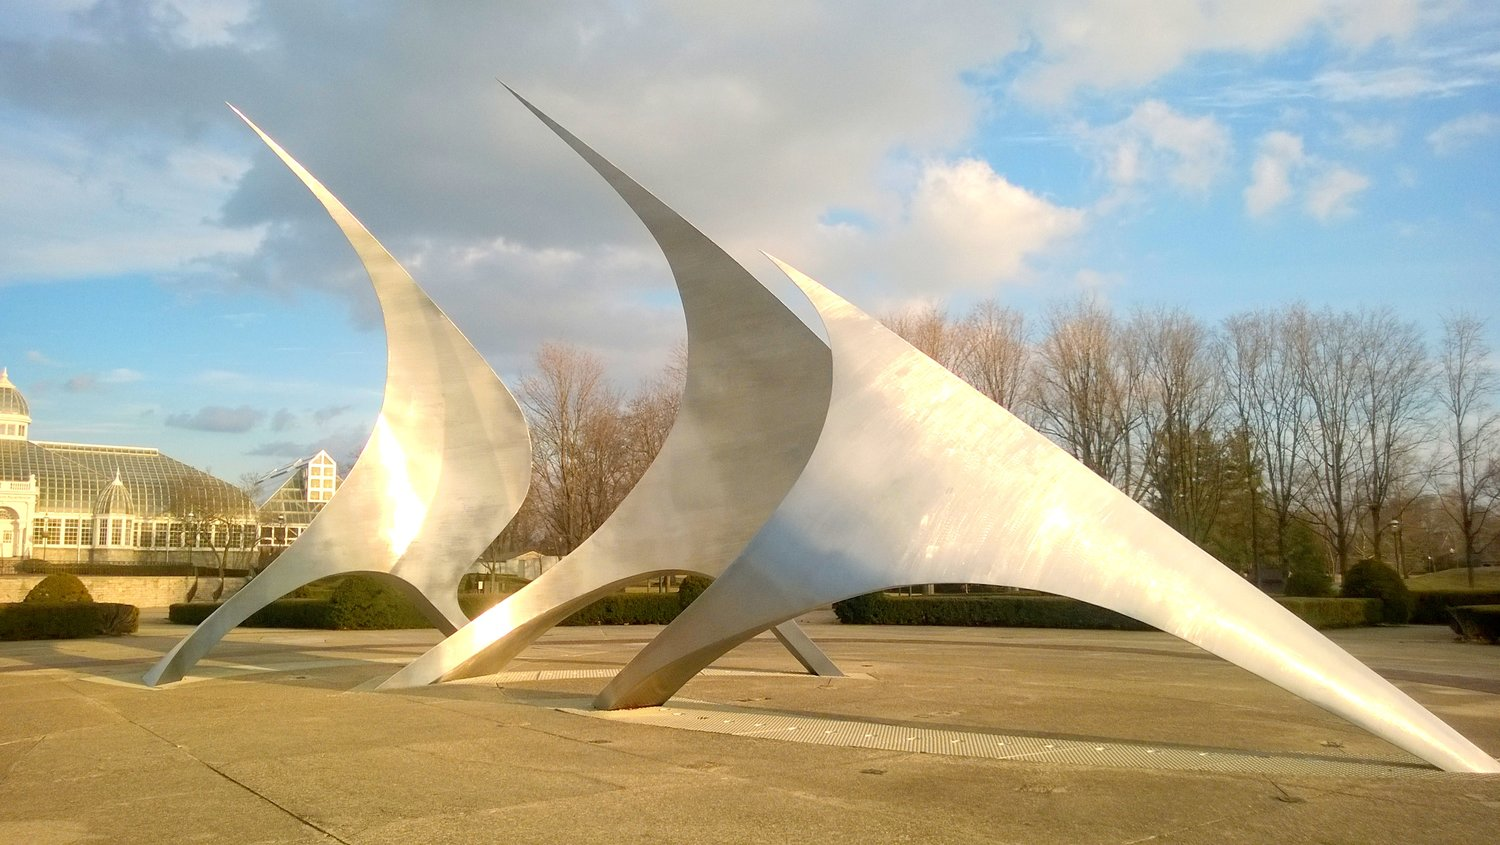 """NavStar"", one of Canneto's most well-known large scale public works exemplifying his signature dancing forms. [photo credit: Canneto Studios]"